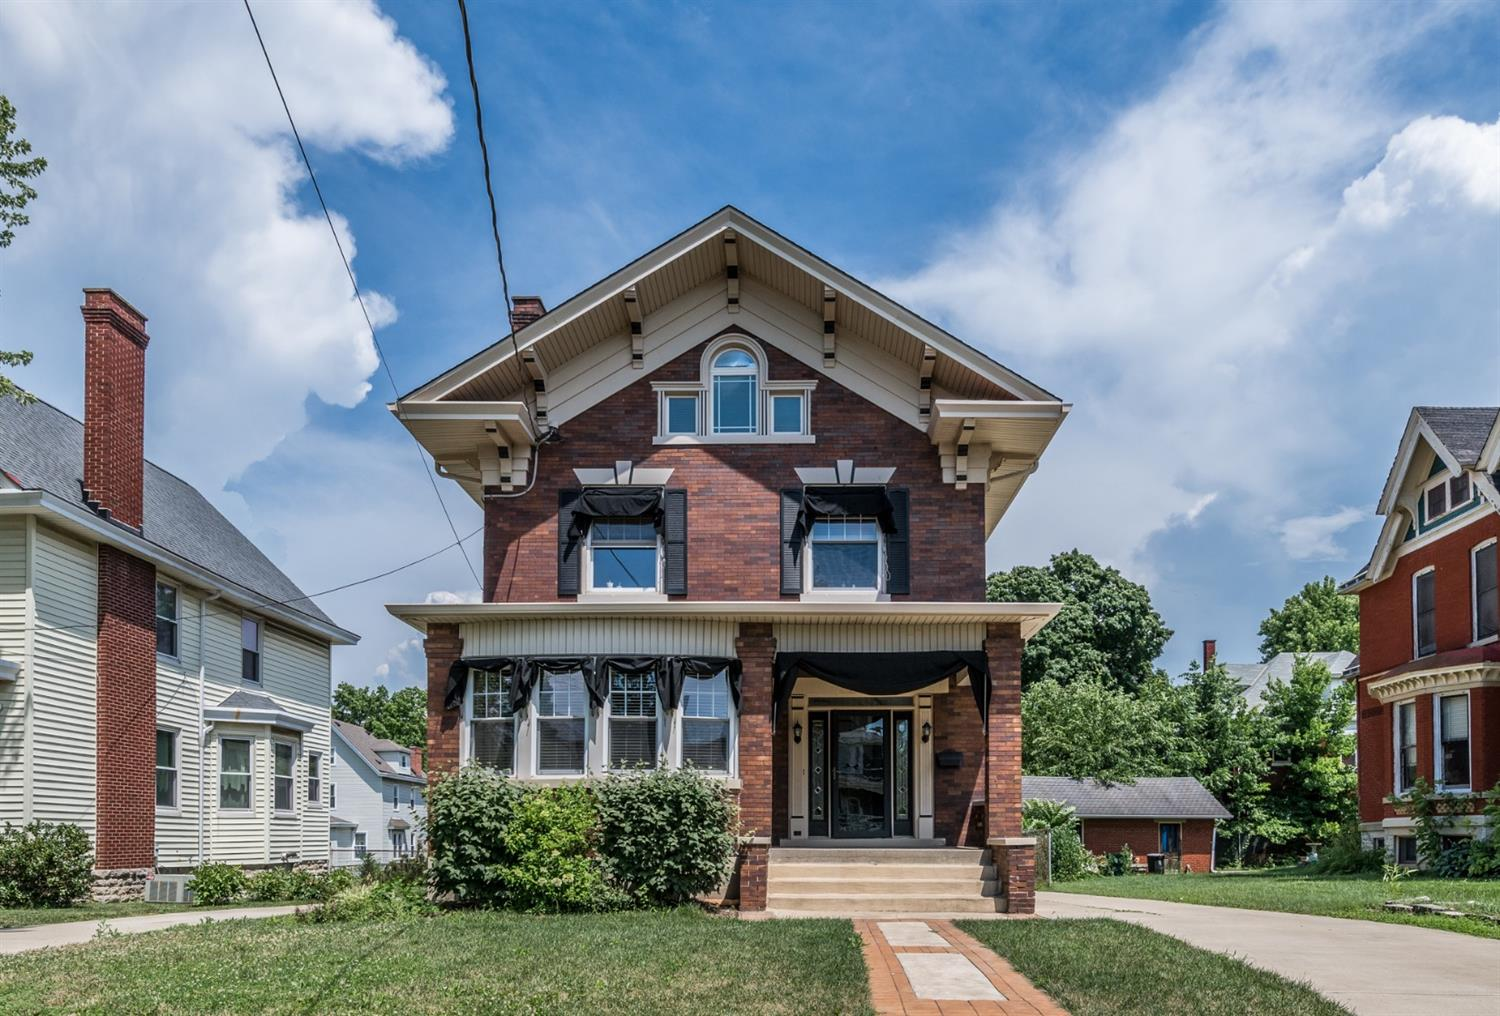 3910 Floral Ave Norwood, OH